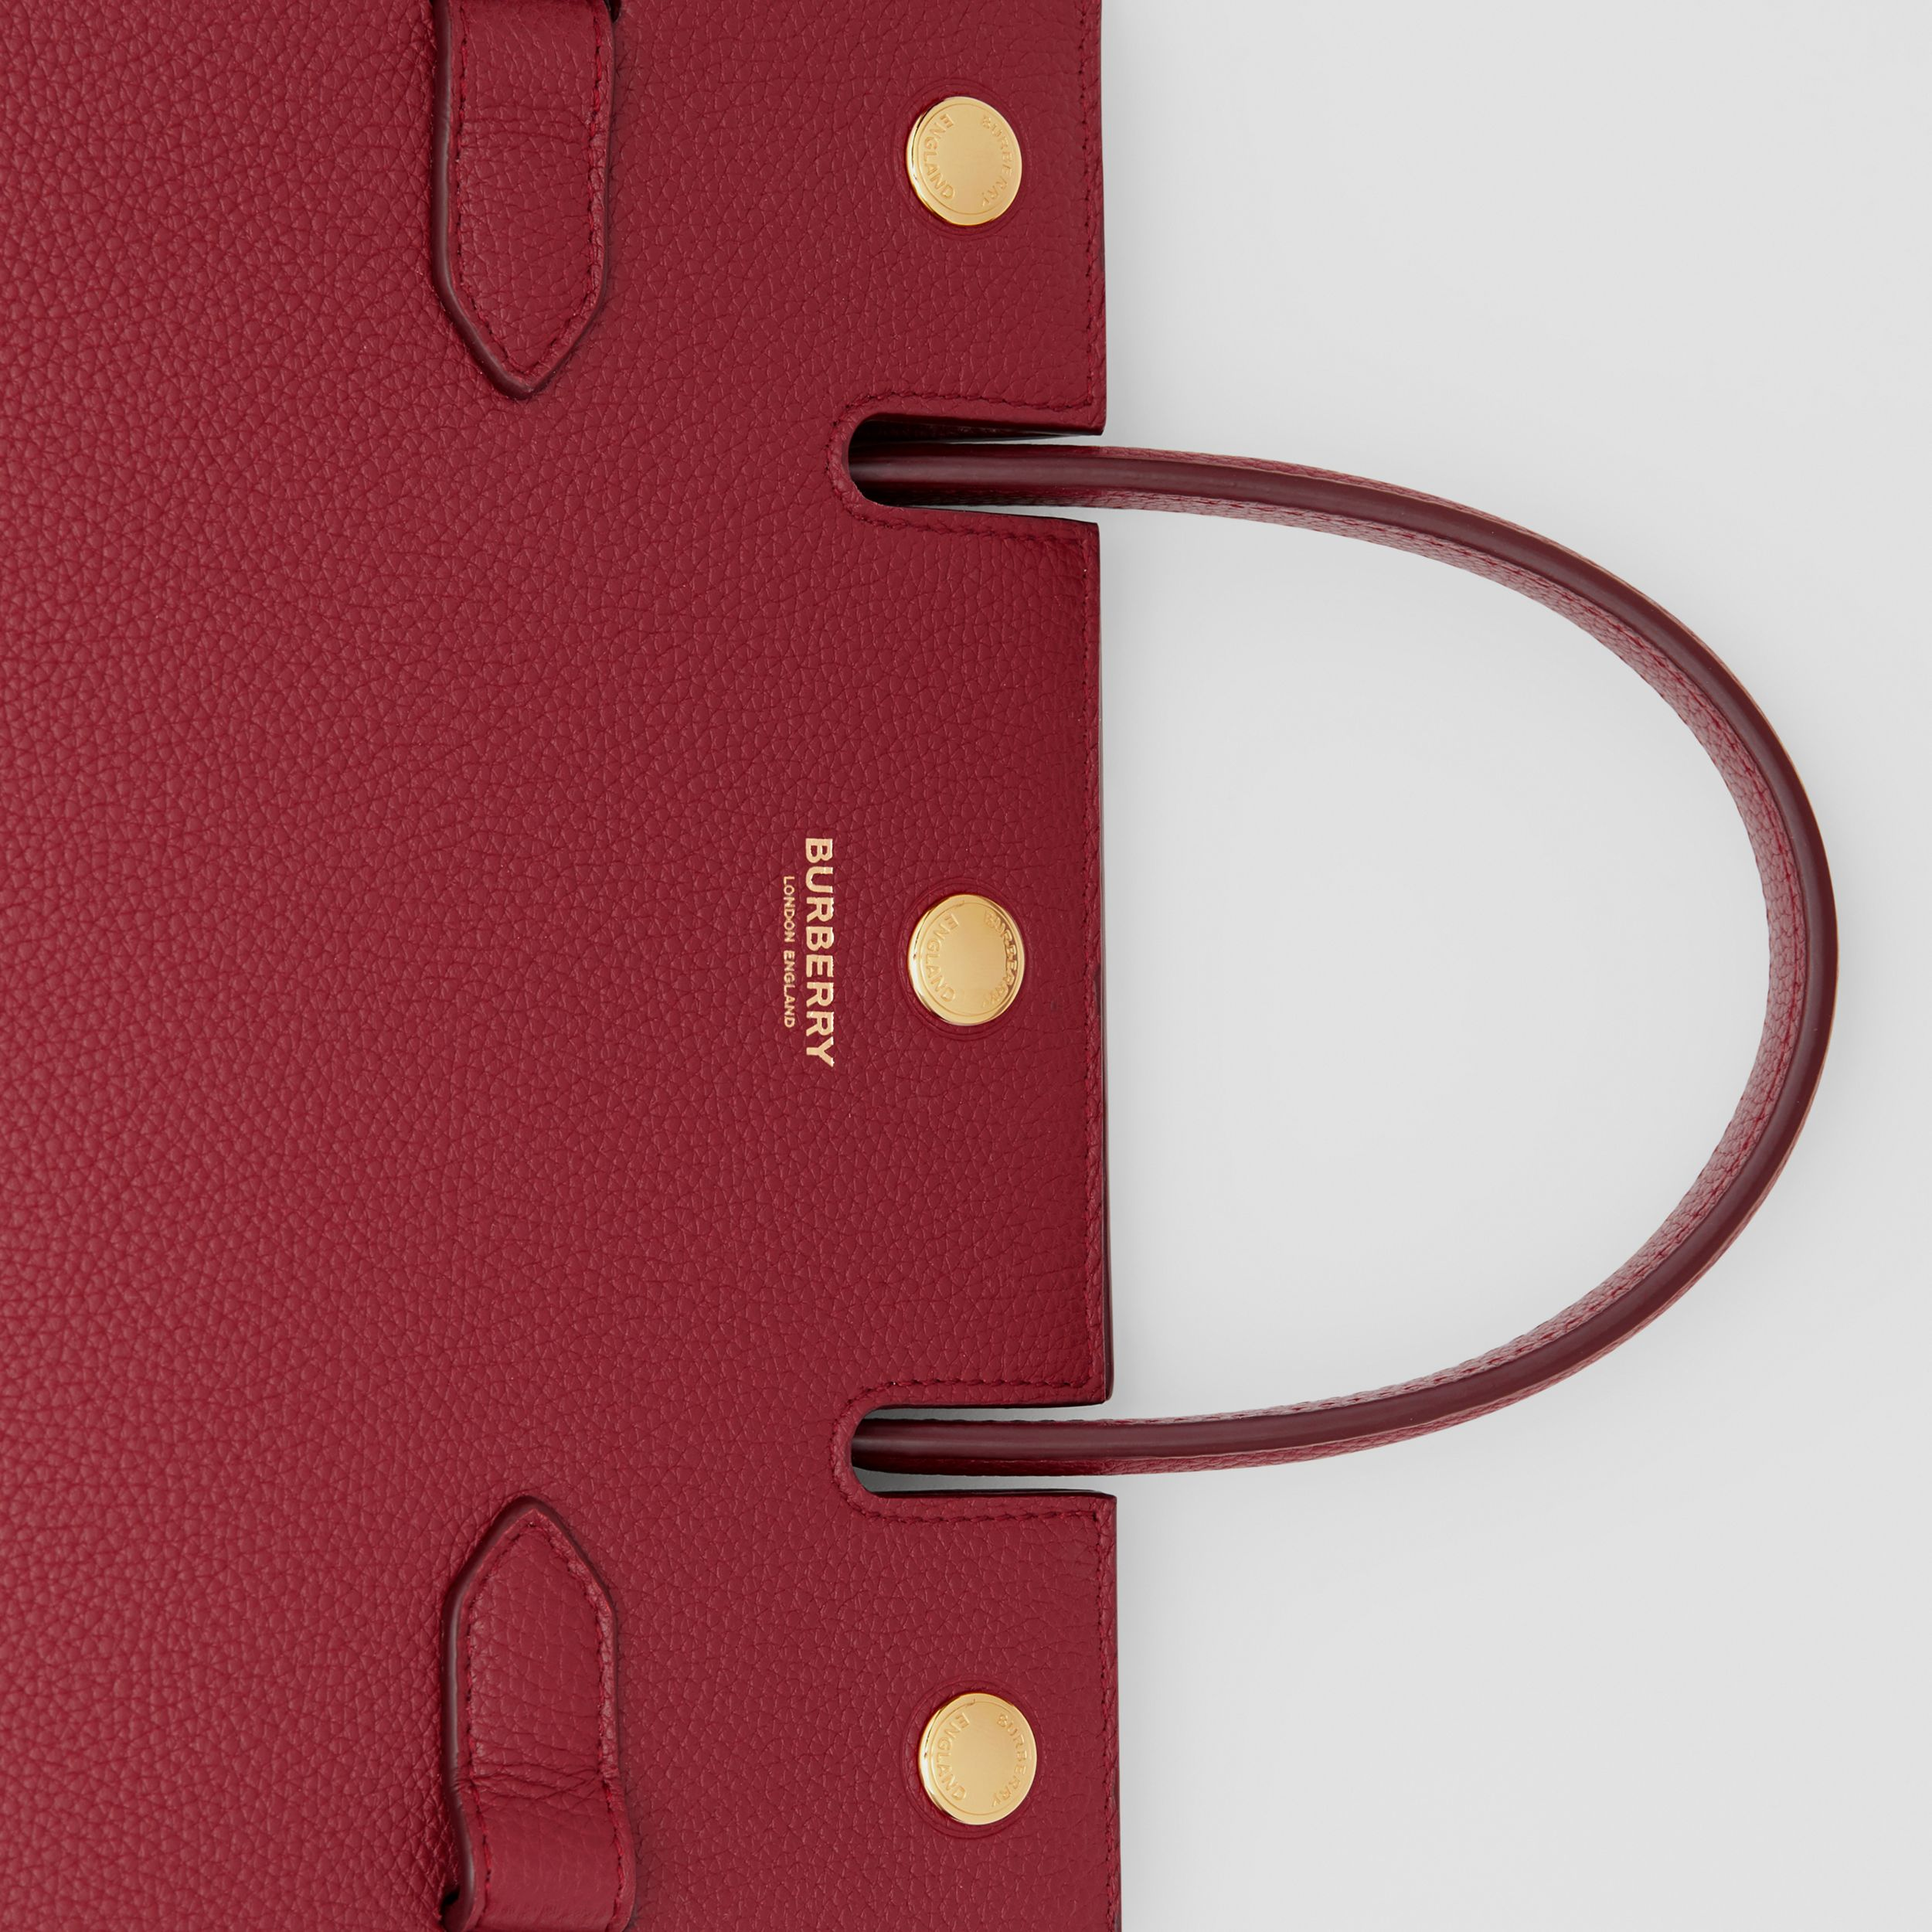 Mini Leather Title Bag in Dark Crimson - Women | Burberry - 2